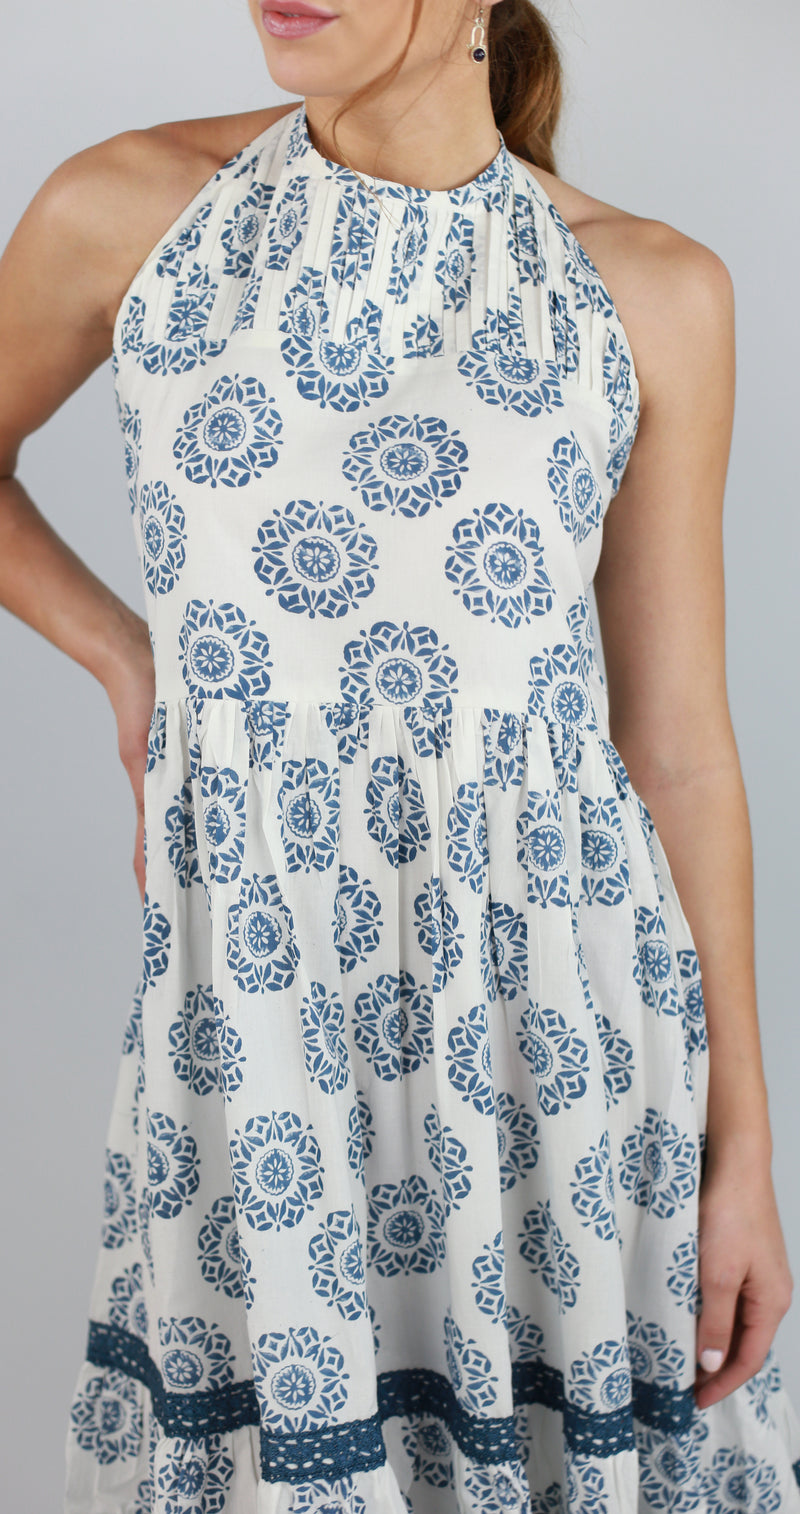 Sarah Summer Halter Dress